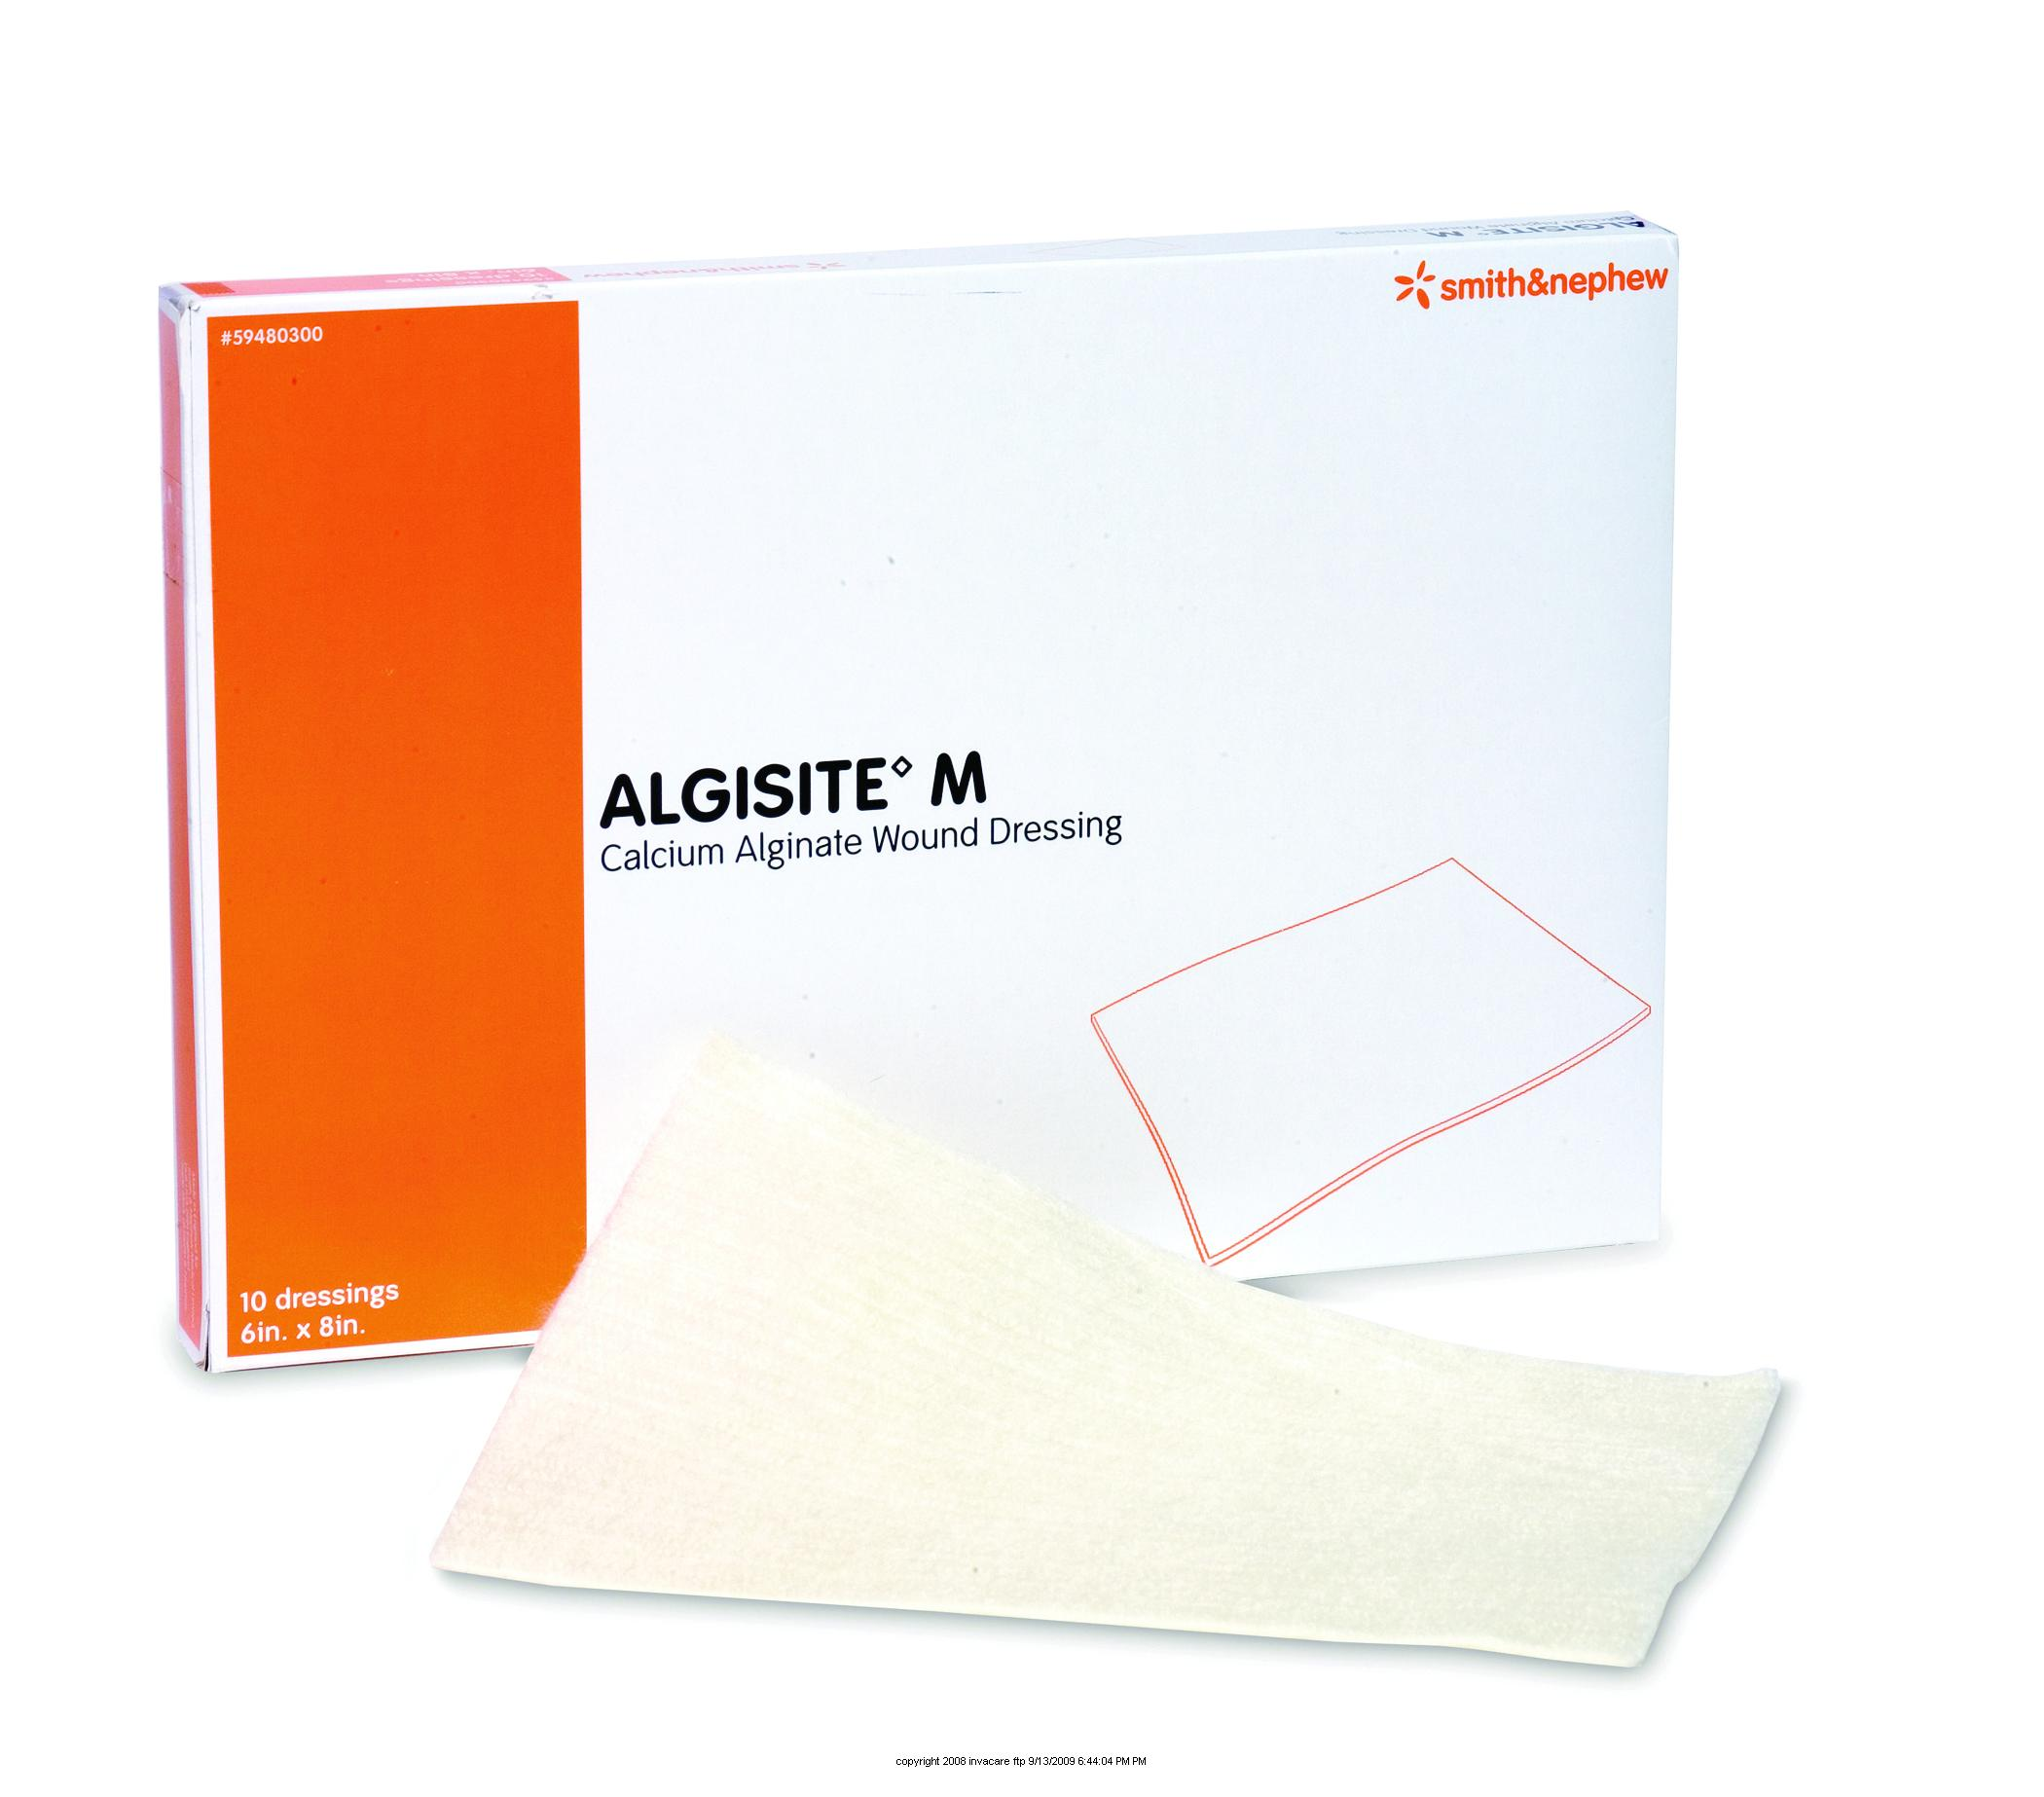 Dressing Point P Algisite M Calcium Alginate Dressing Algisite M Drs 6x8 In